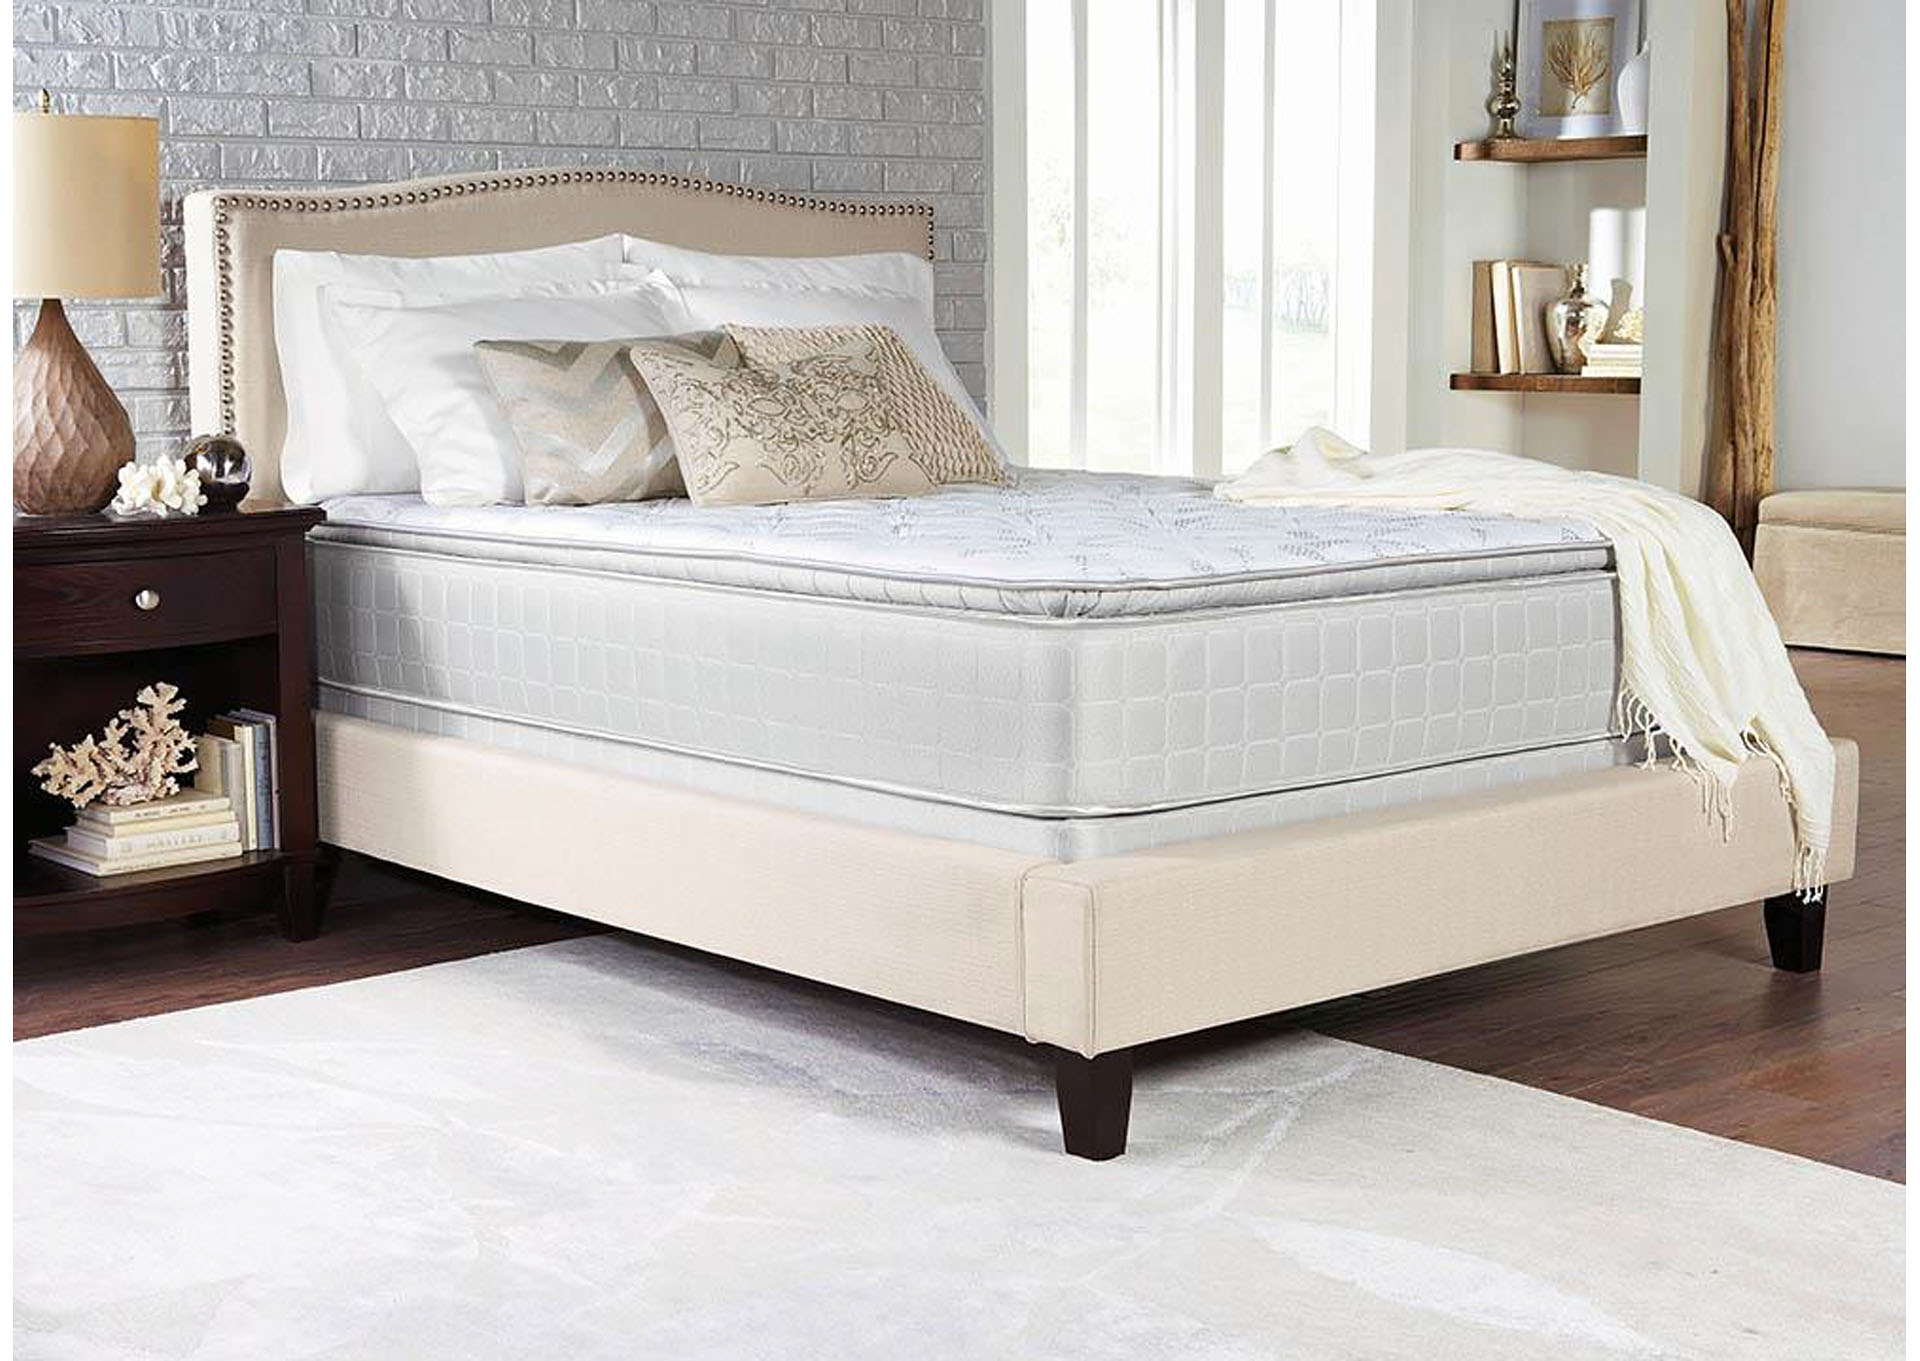 Marbella Pillow Top Twin Mattress,Coaster Furniture